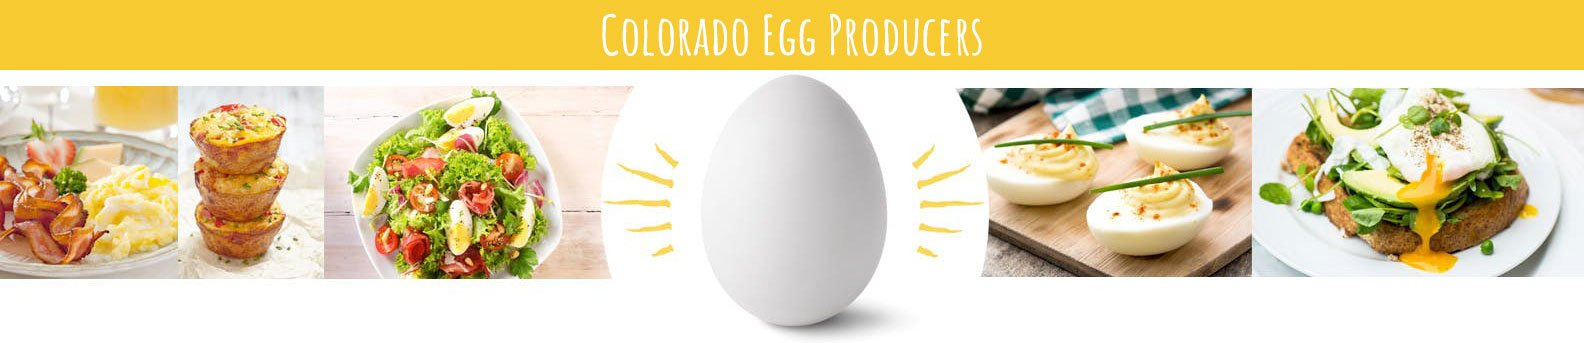 CEP, Best Egg Recipes, Egg Nutrition Education, Health Benefits of Eggs, Weggsday, American Egg Board, Backhouse Marketing